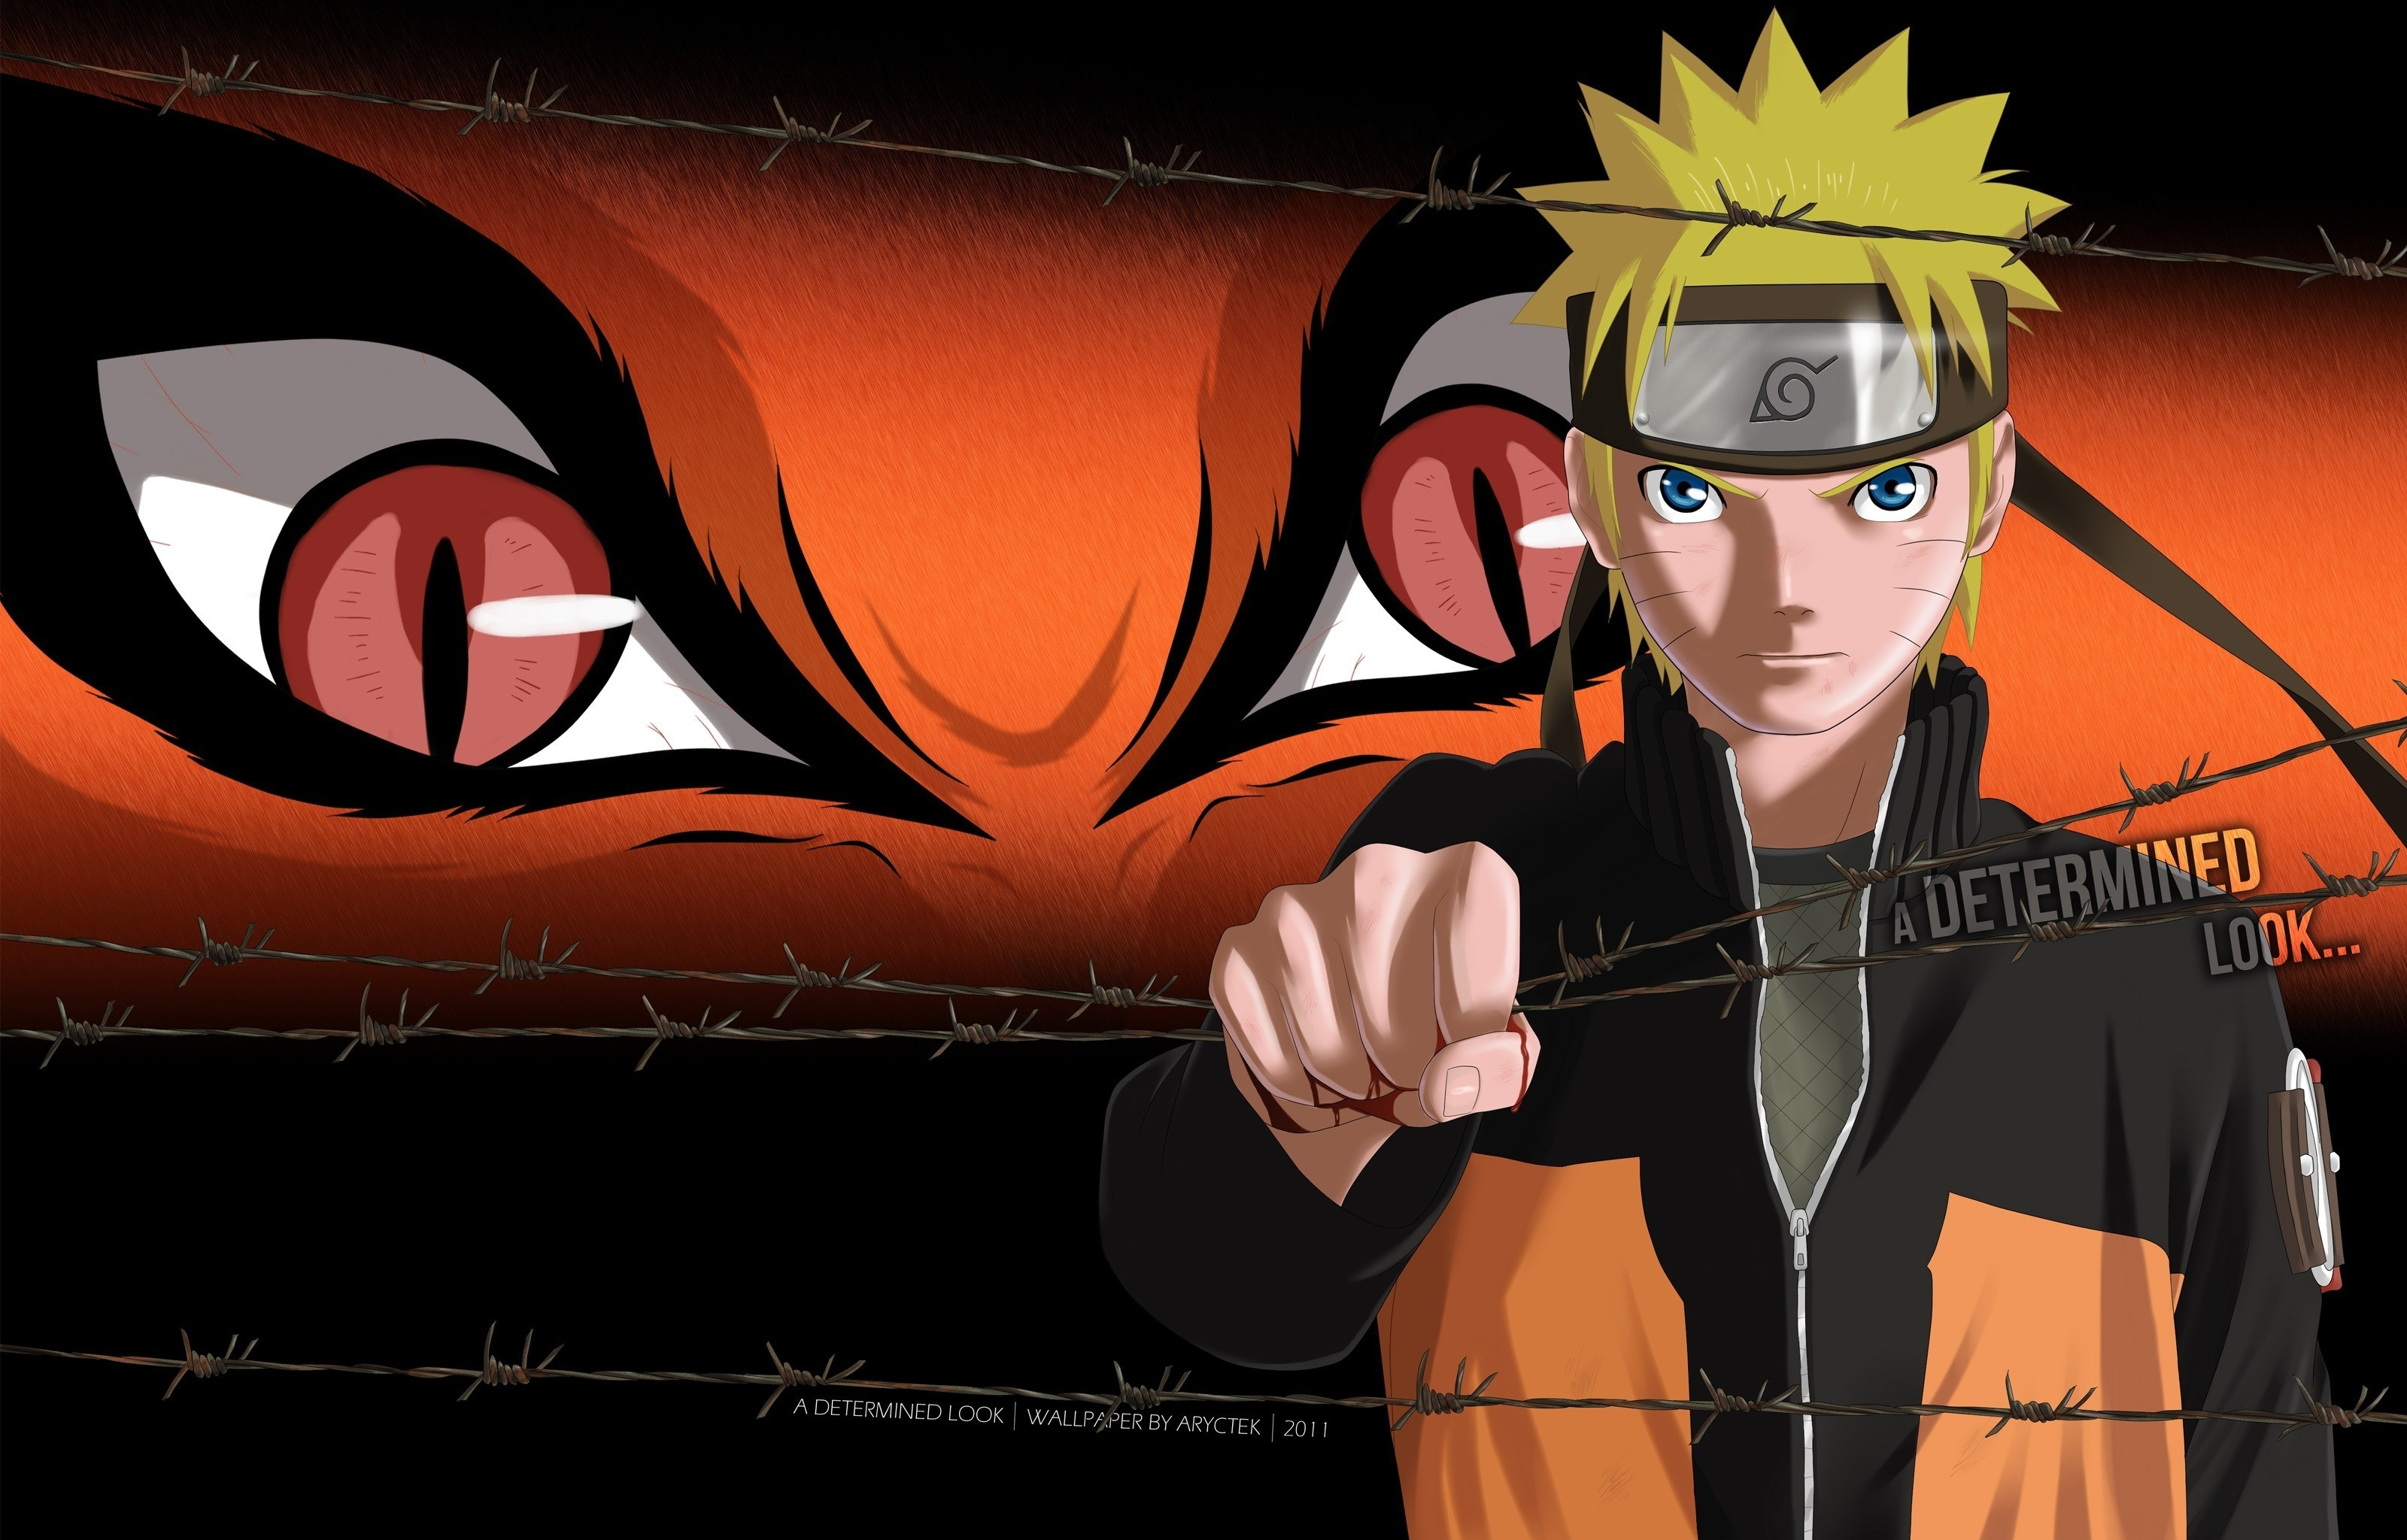 Naruto Shippuden Wallpaper 16